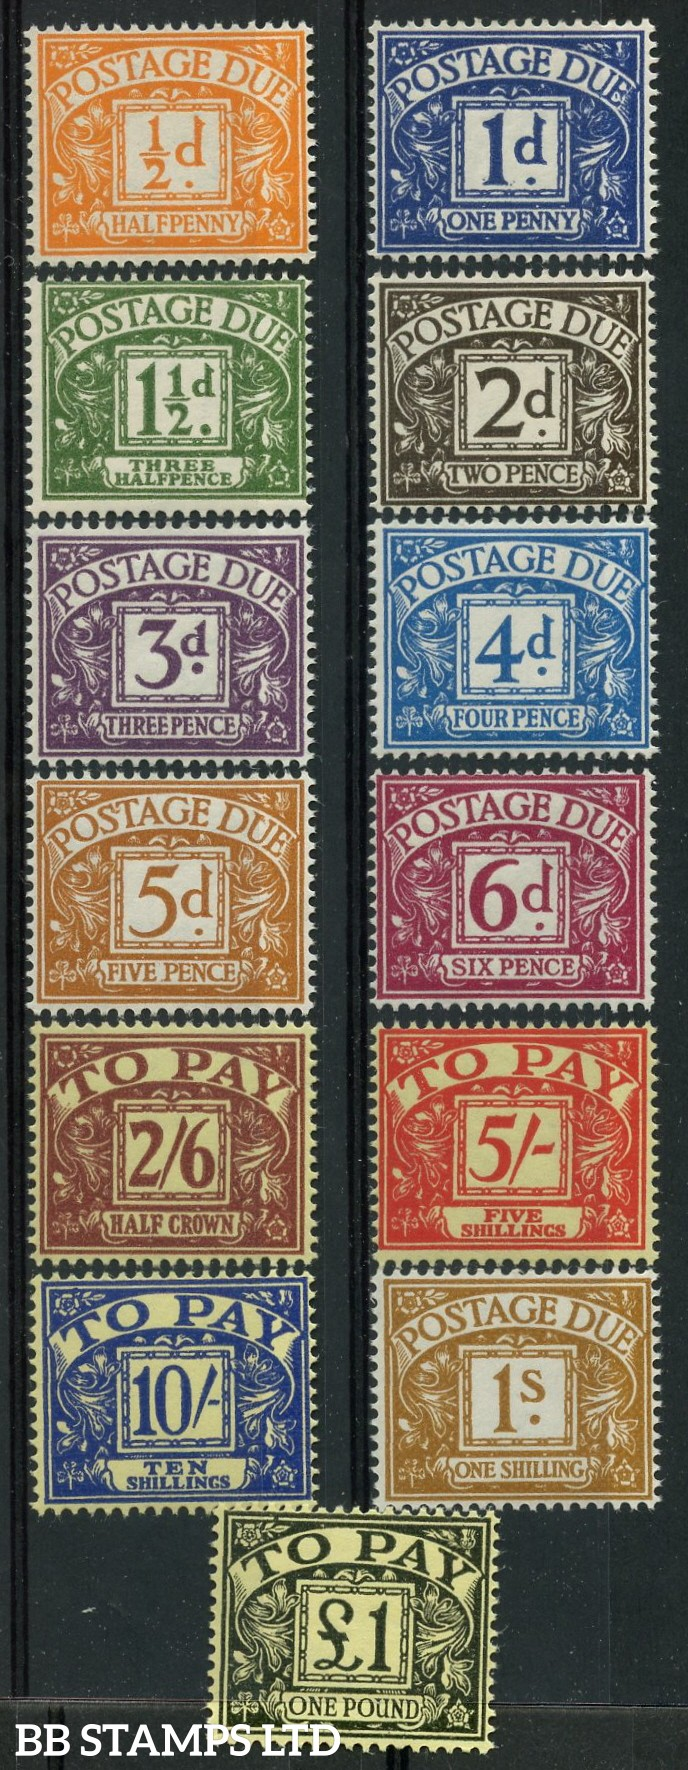 SG. D56 - D68. ½d - £1.00. POSTAGE DUE. A very fine UNMOUNTED MINT complete set of 13.